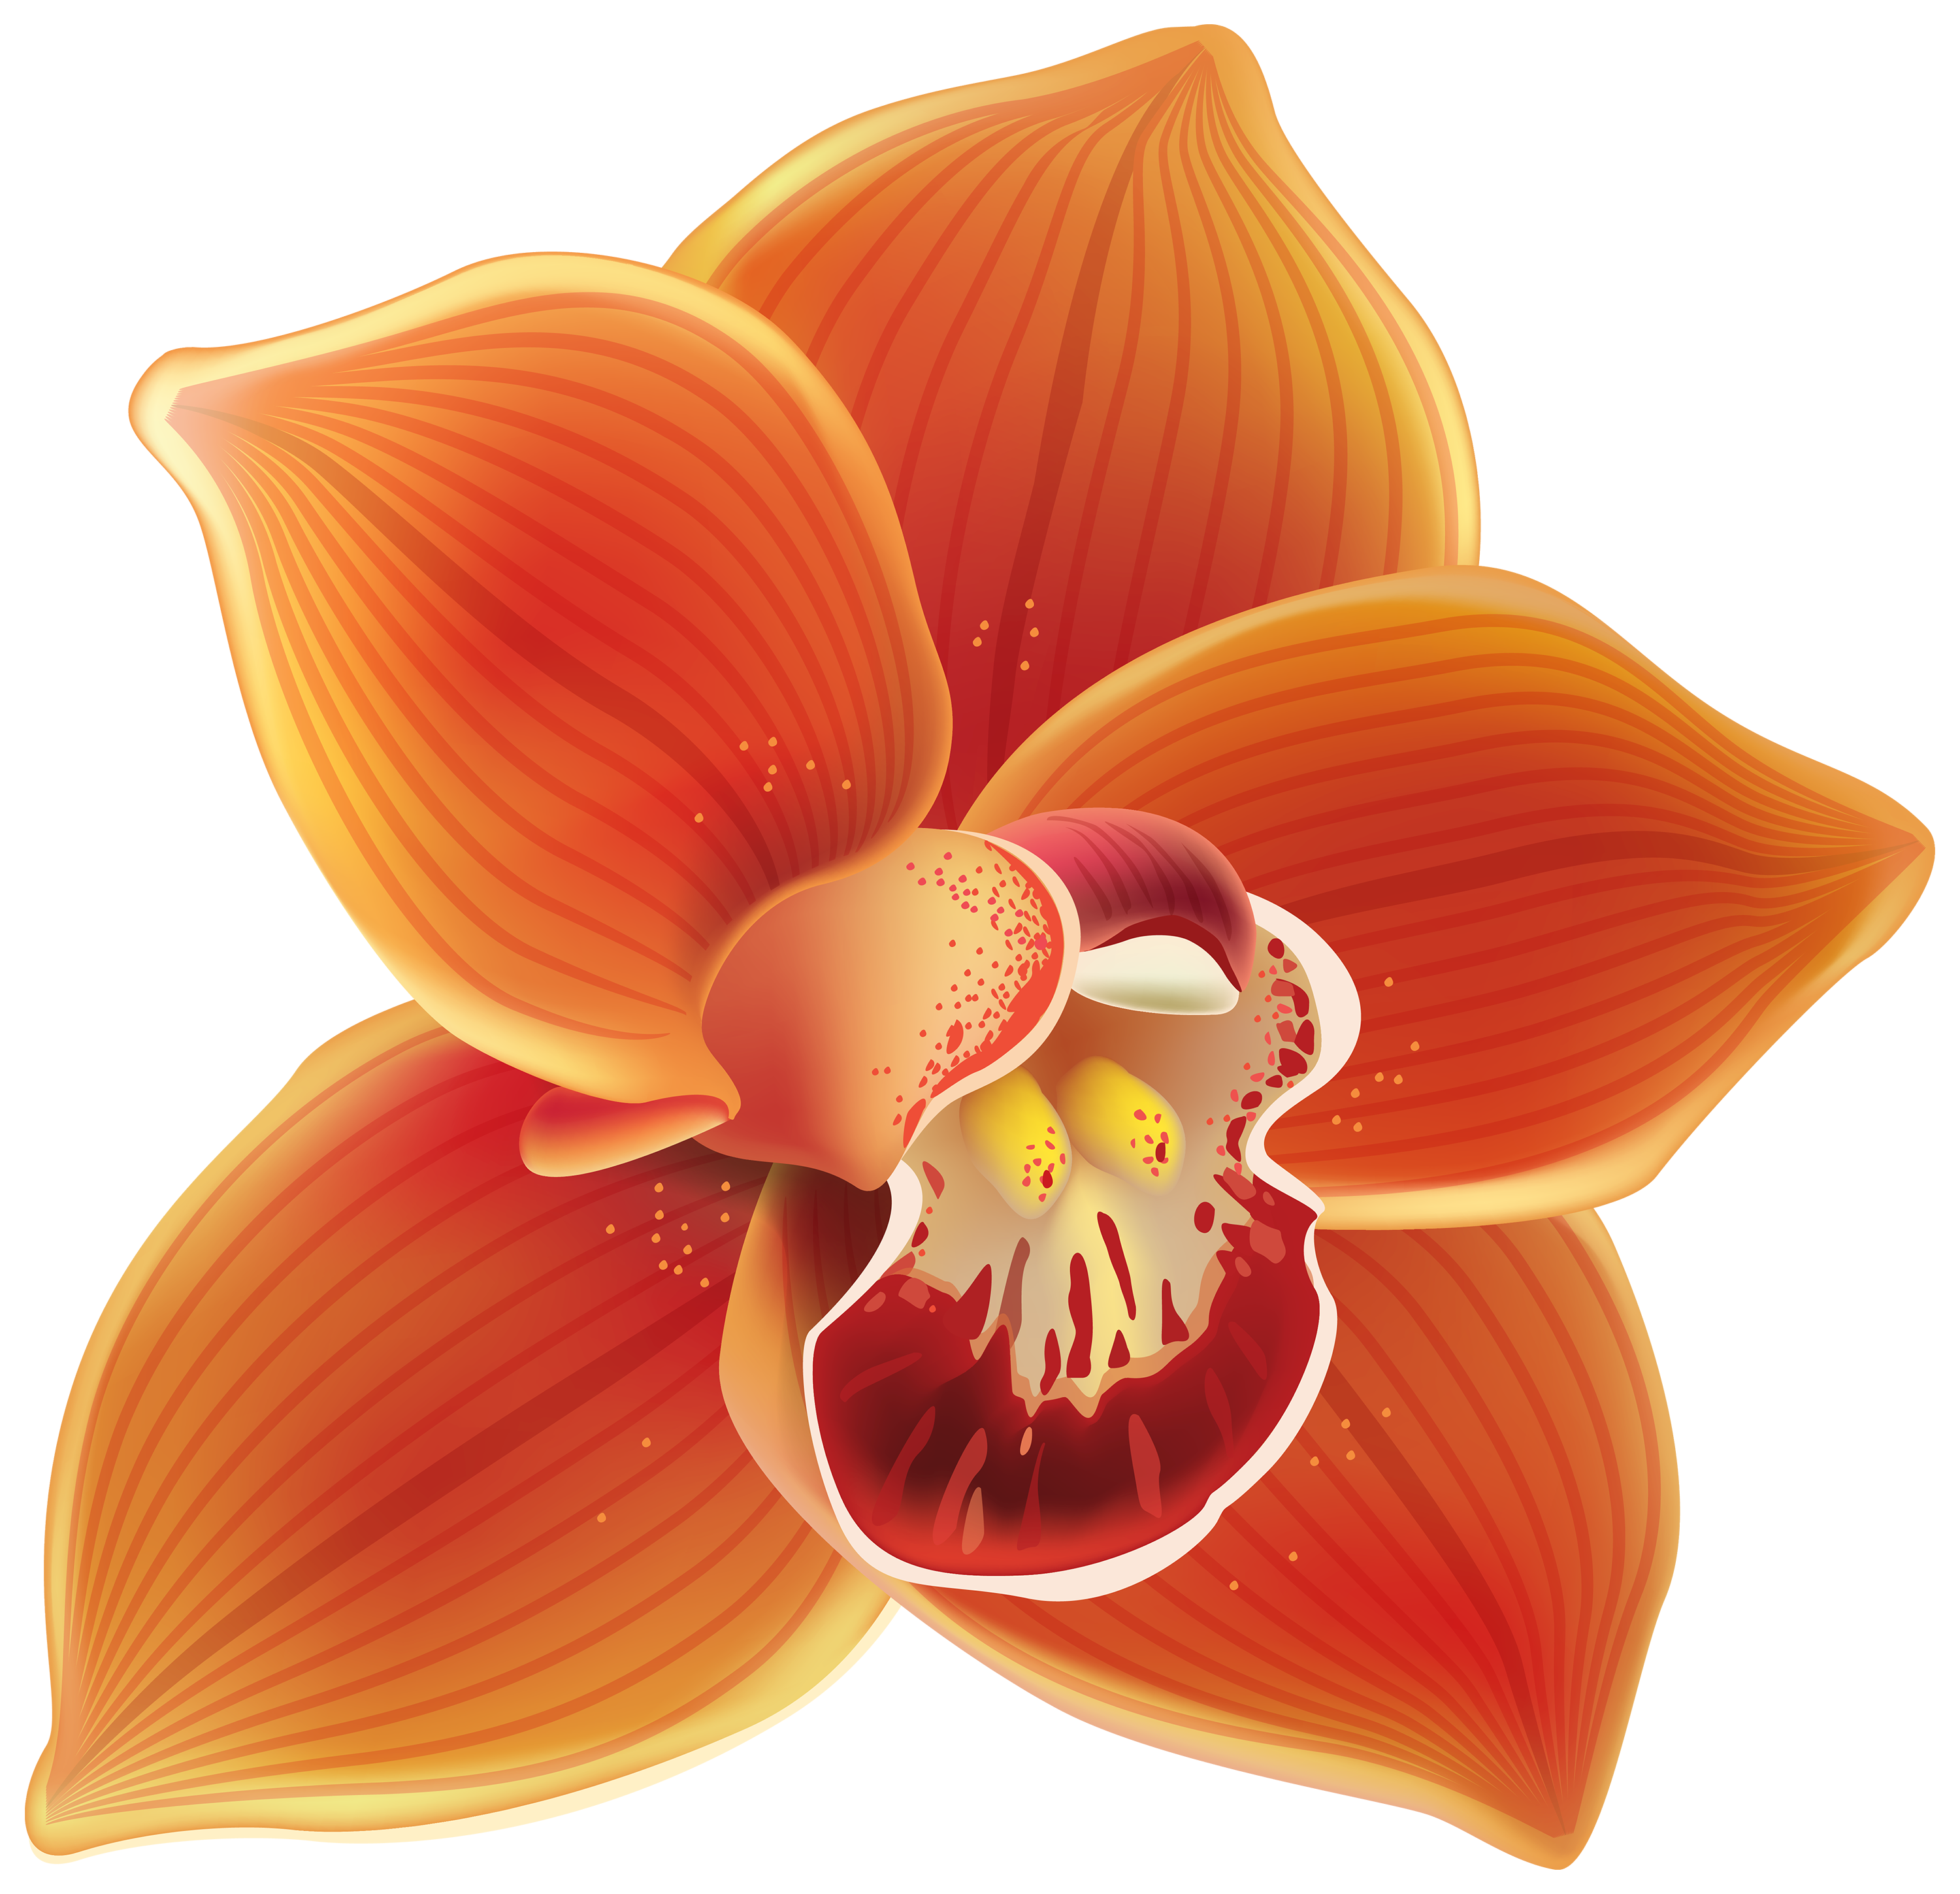 Orchid flower clipart clipart black and white stock Orange Orchid PNG Clipart - Best WEB Clipart clipart black and white stock